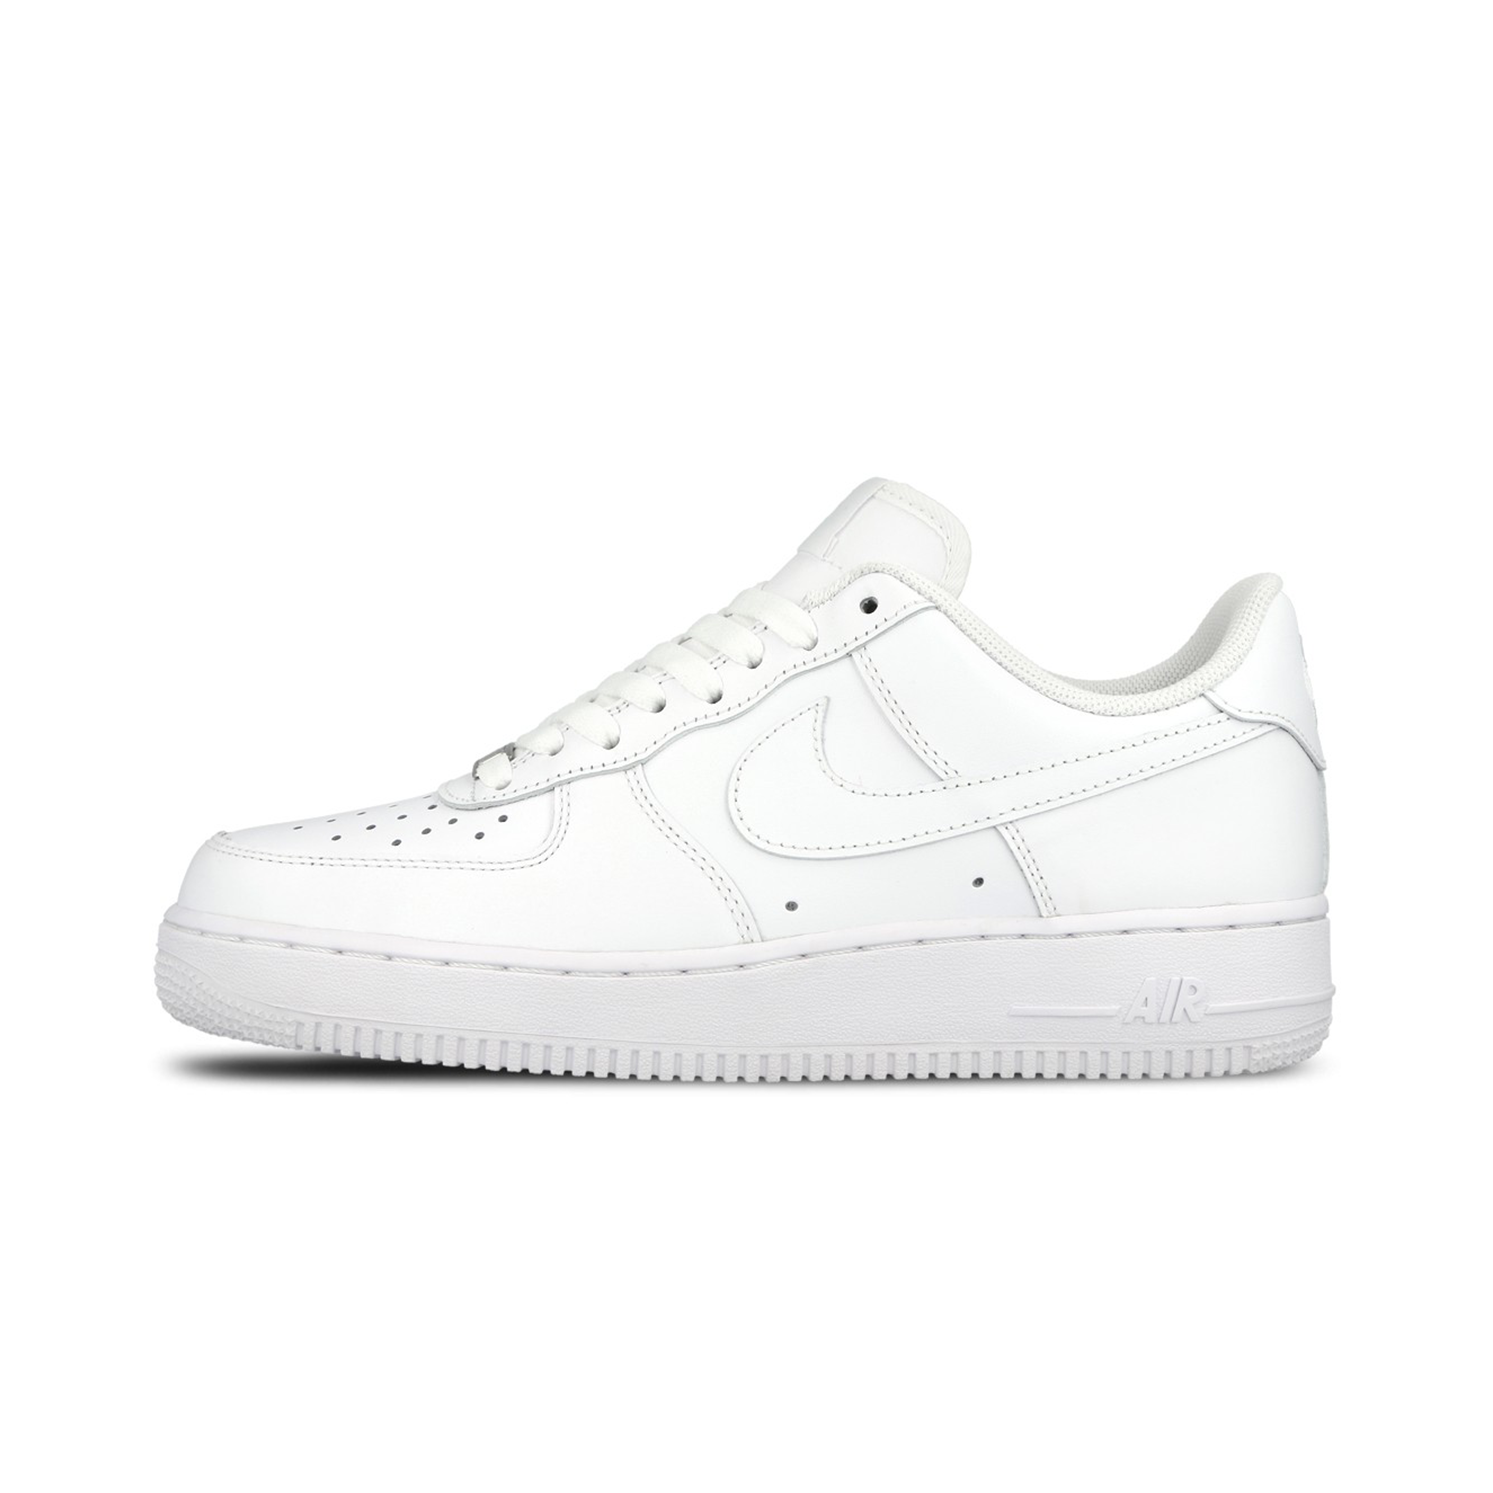 Air Force 1 07 Lx Baskets Basses Nike Air Force 1 07 Low Triple White Nike Air Force Nike Mens Nike Shoes